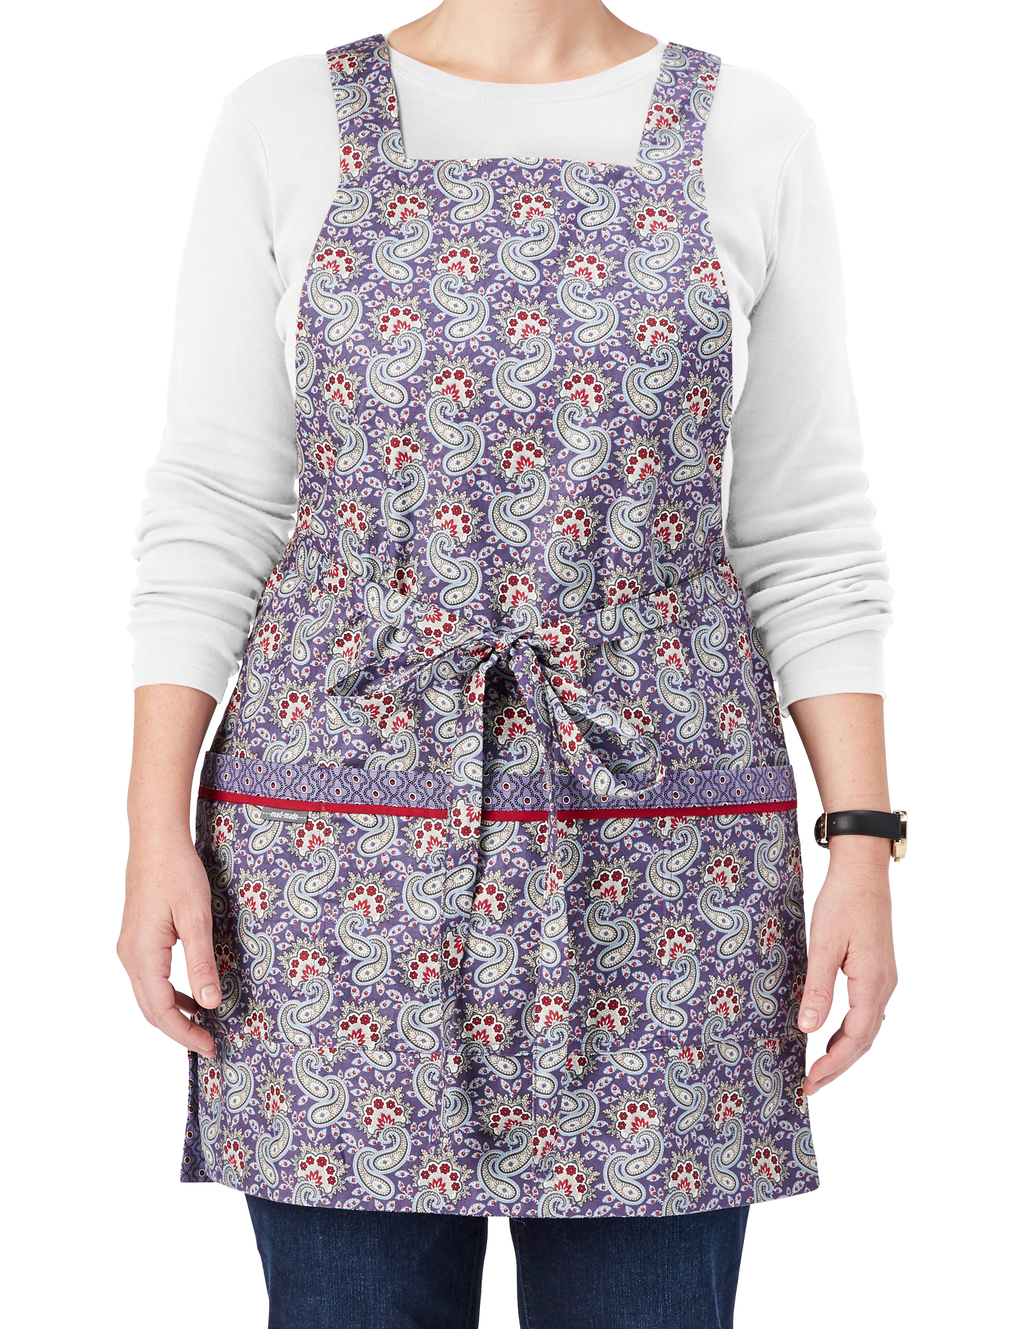 Vintage pinafore style reversible apron in paisley print. Dusty purple with red and ivory accents. Front View